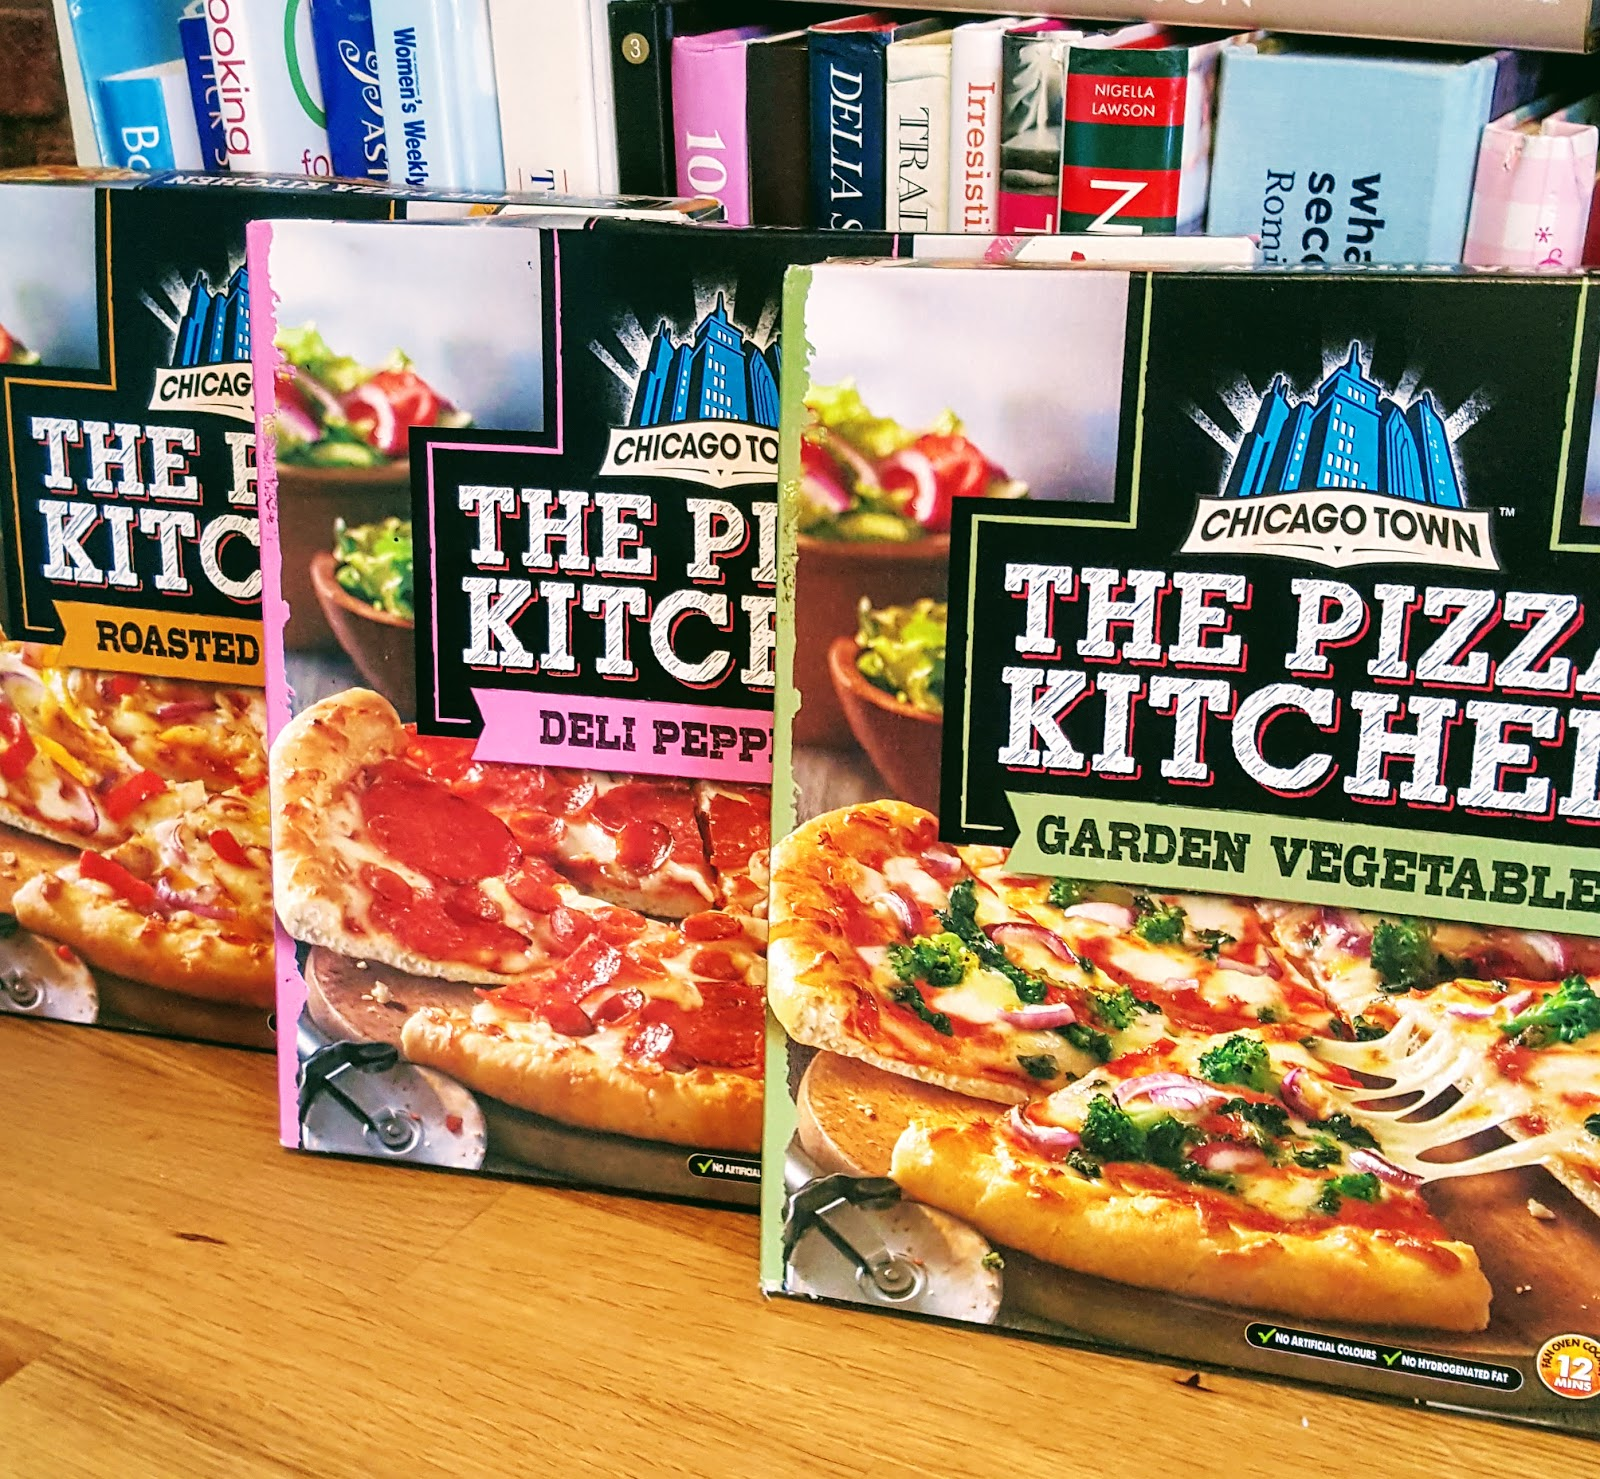 Chicago Town launch 'The Pizza Kitchen' Pizzas